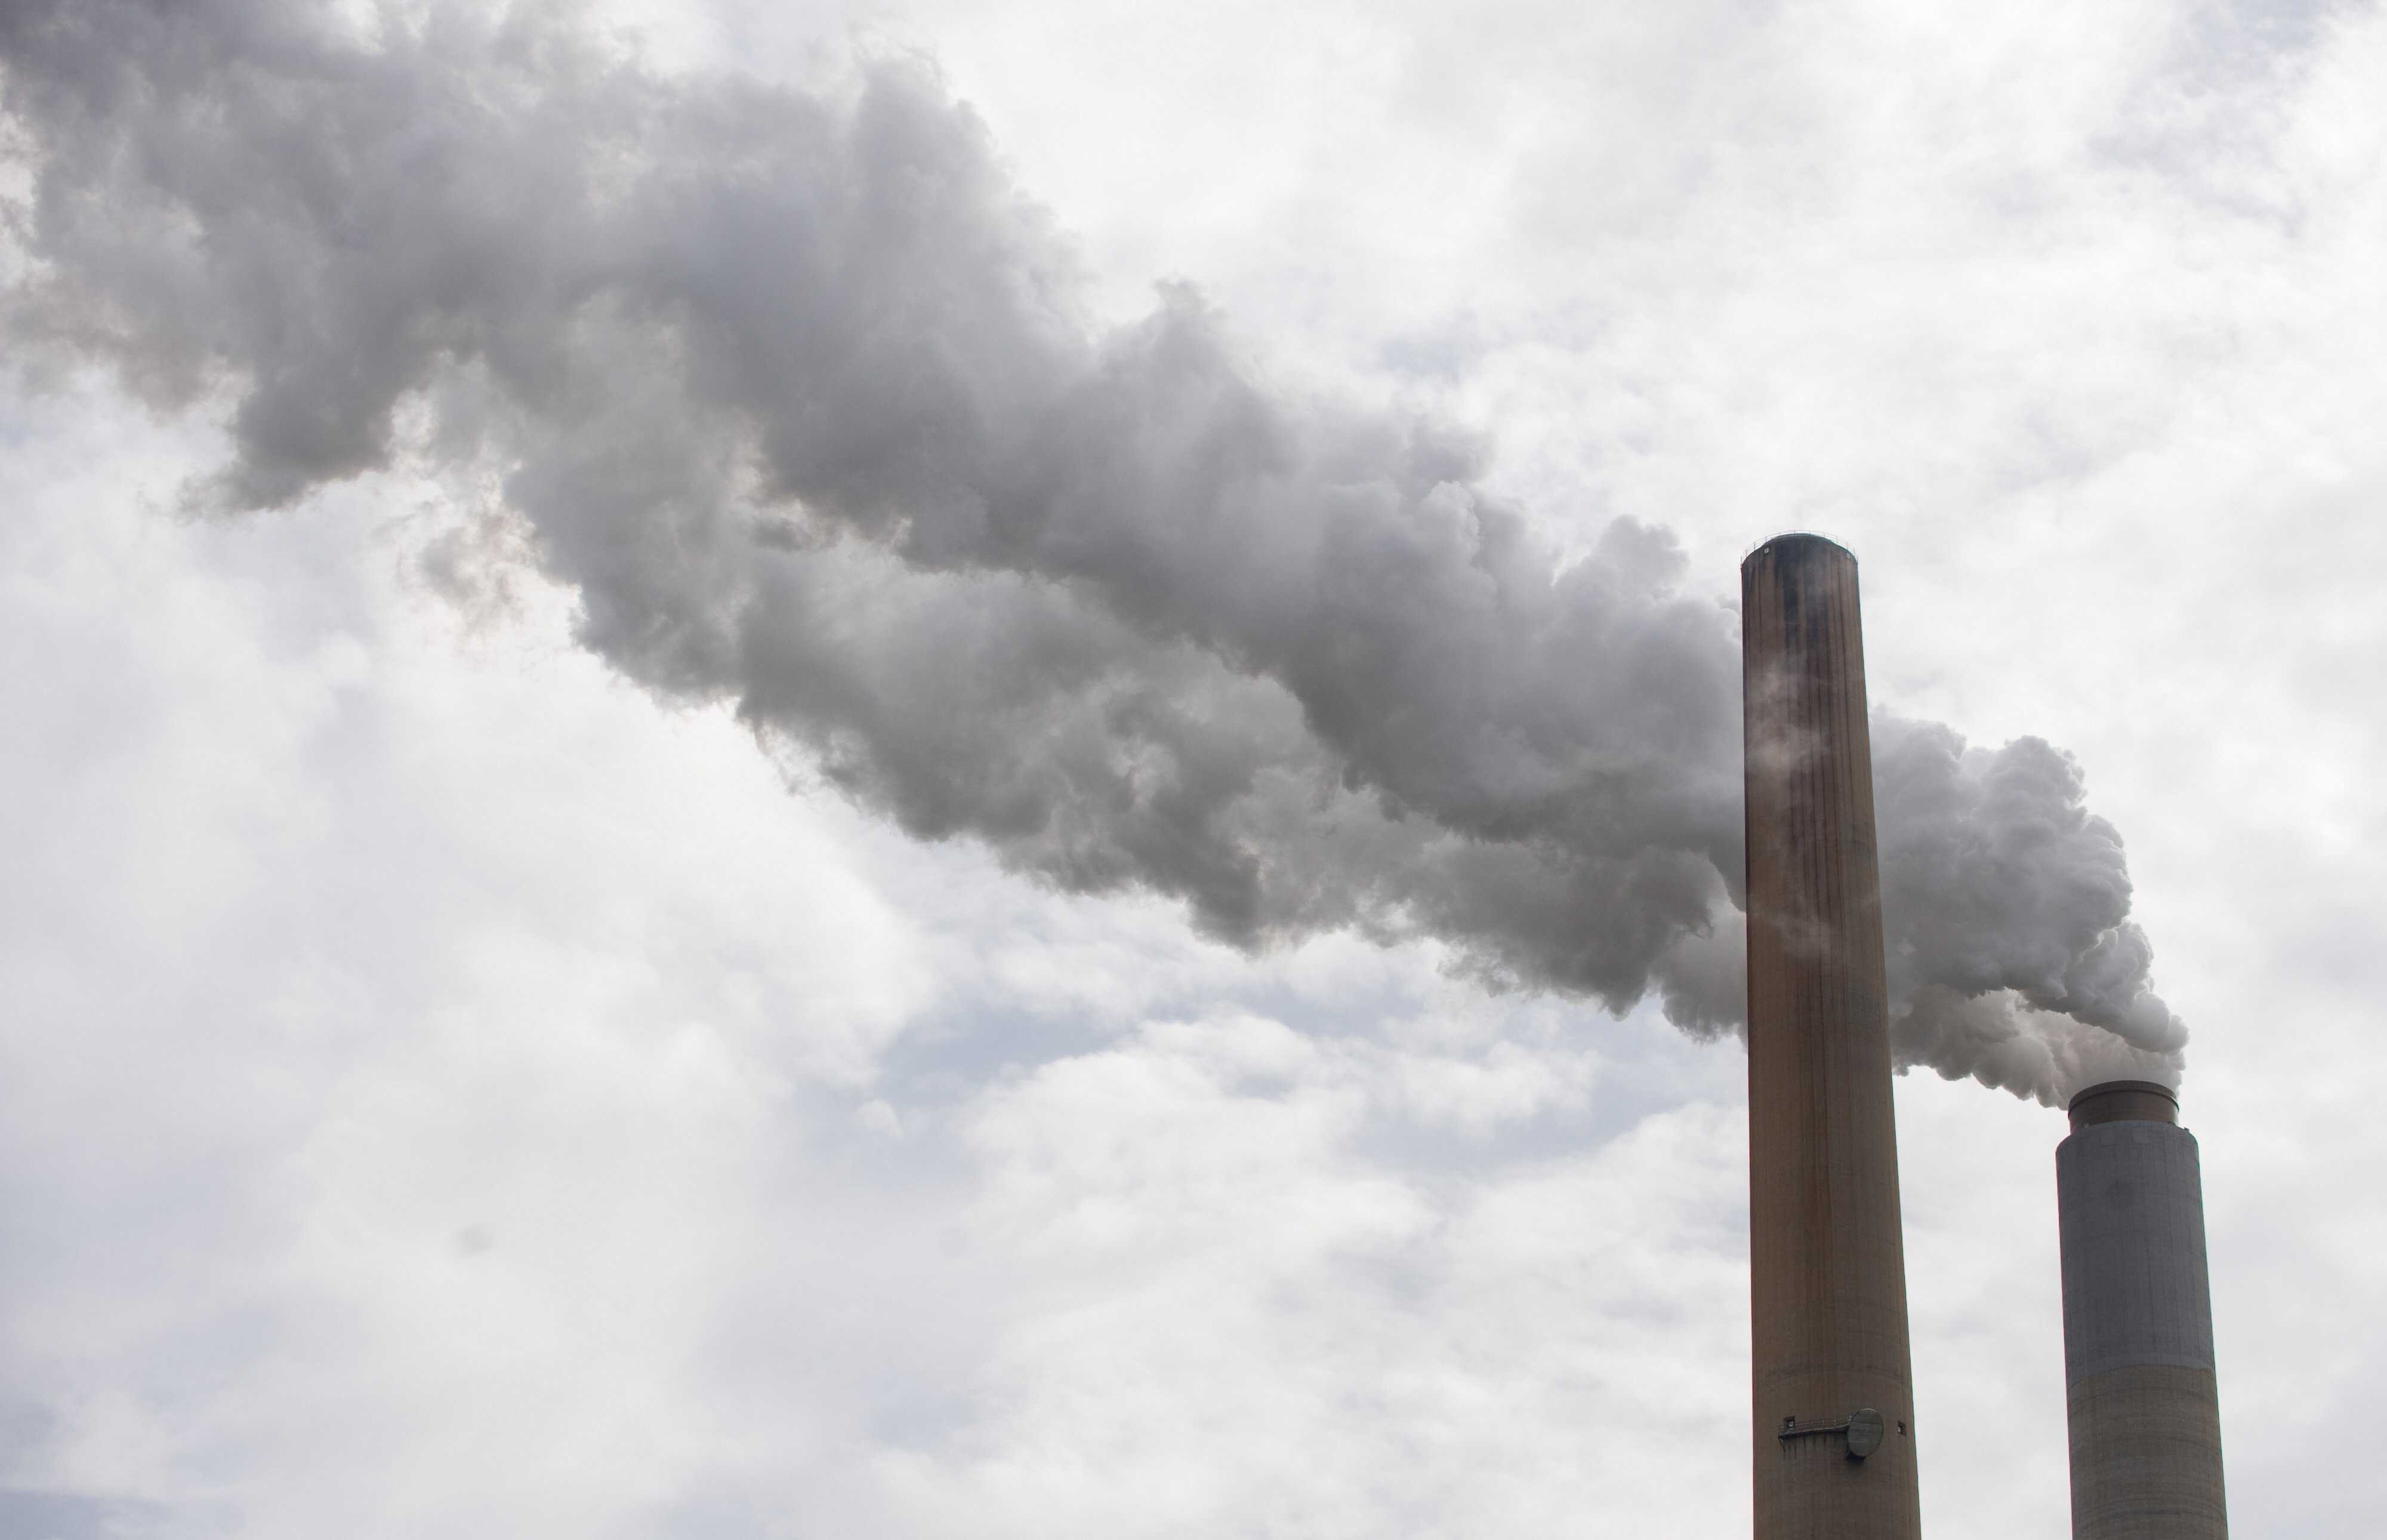 Exposure to polluted air is like smoking a pack a day, study says